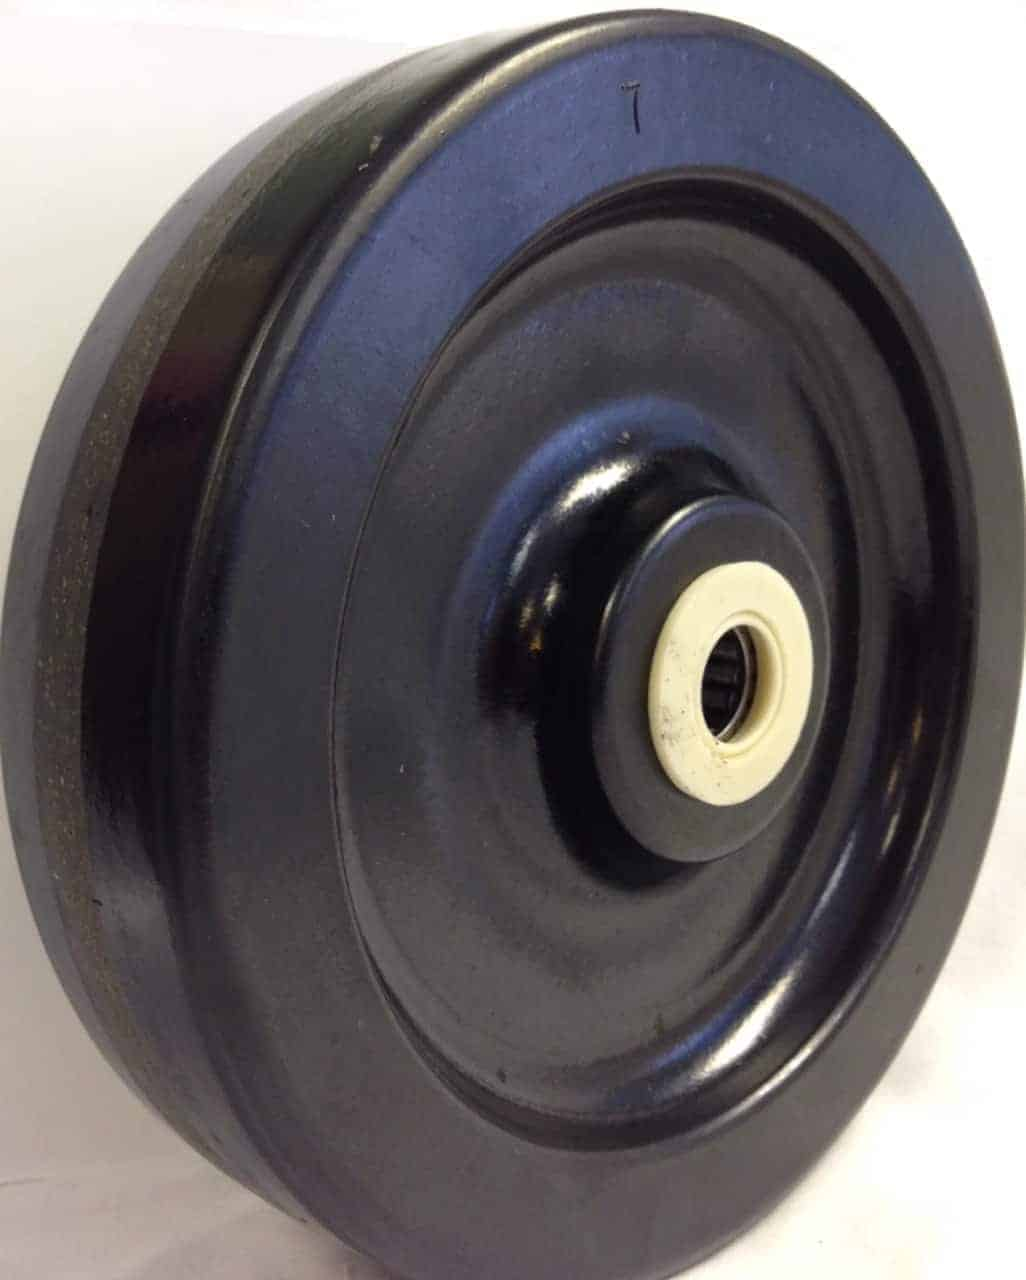 8″ Phenolic Wheel With 2-3/16″ Hub 3/4″ Roller Bearing 1400 Lbs Capacity